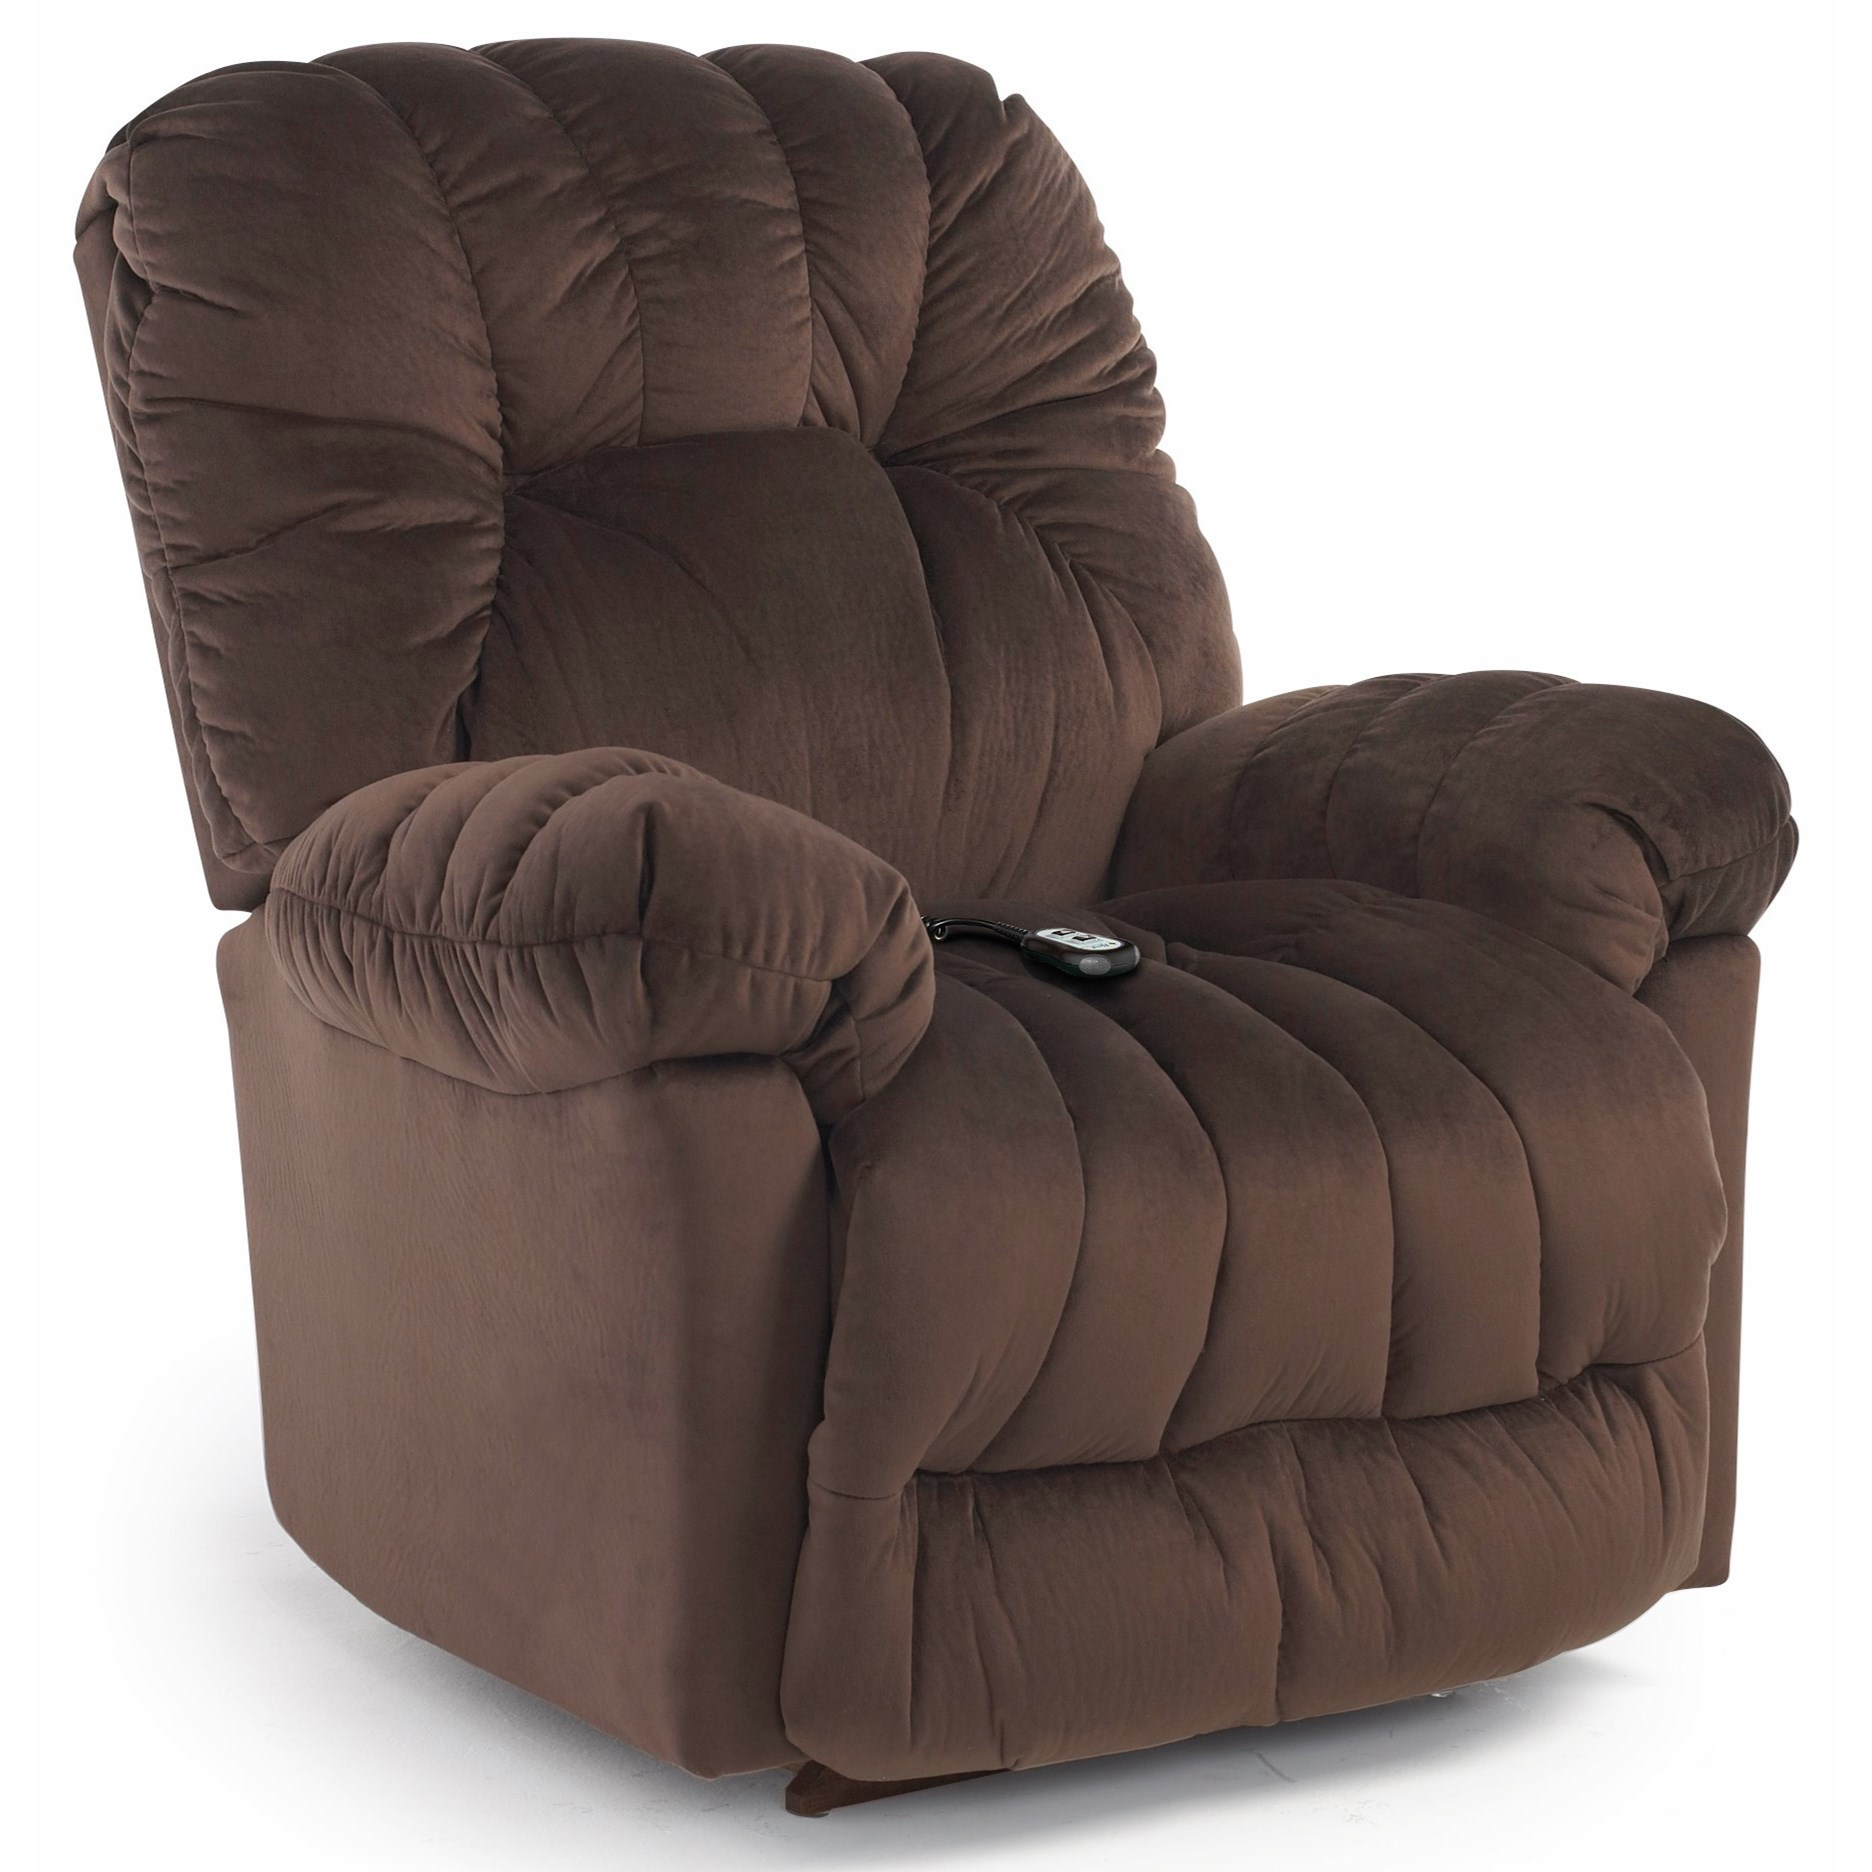 Power Reclining Chairs Conen Power Lift Reclining Chair By Best Home Furnishings